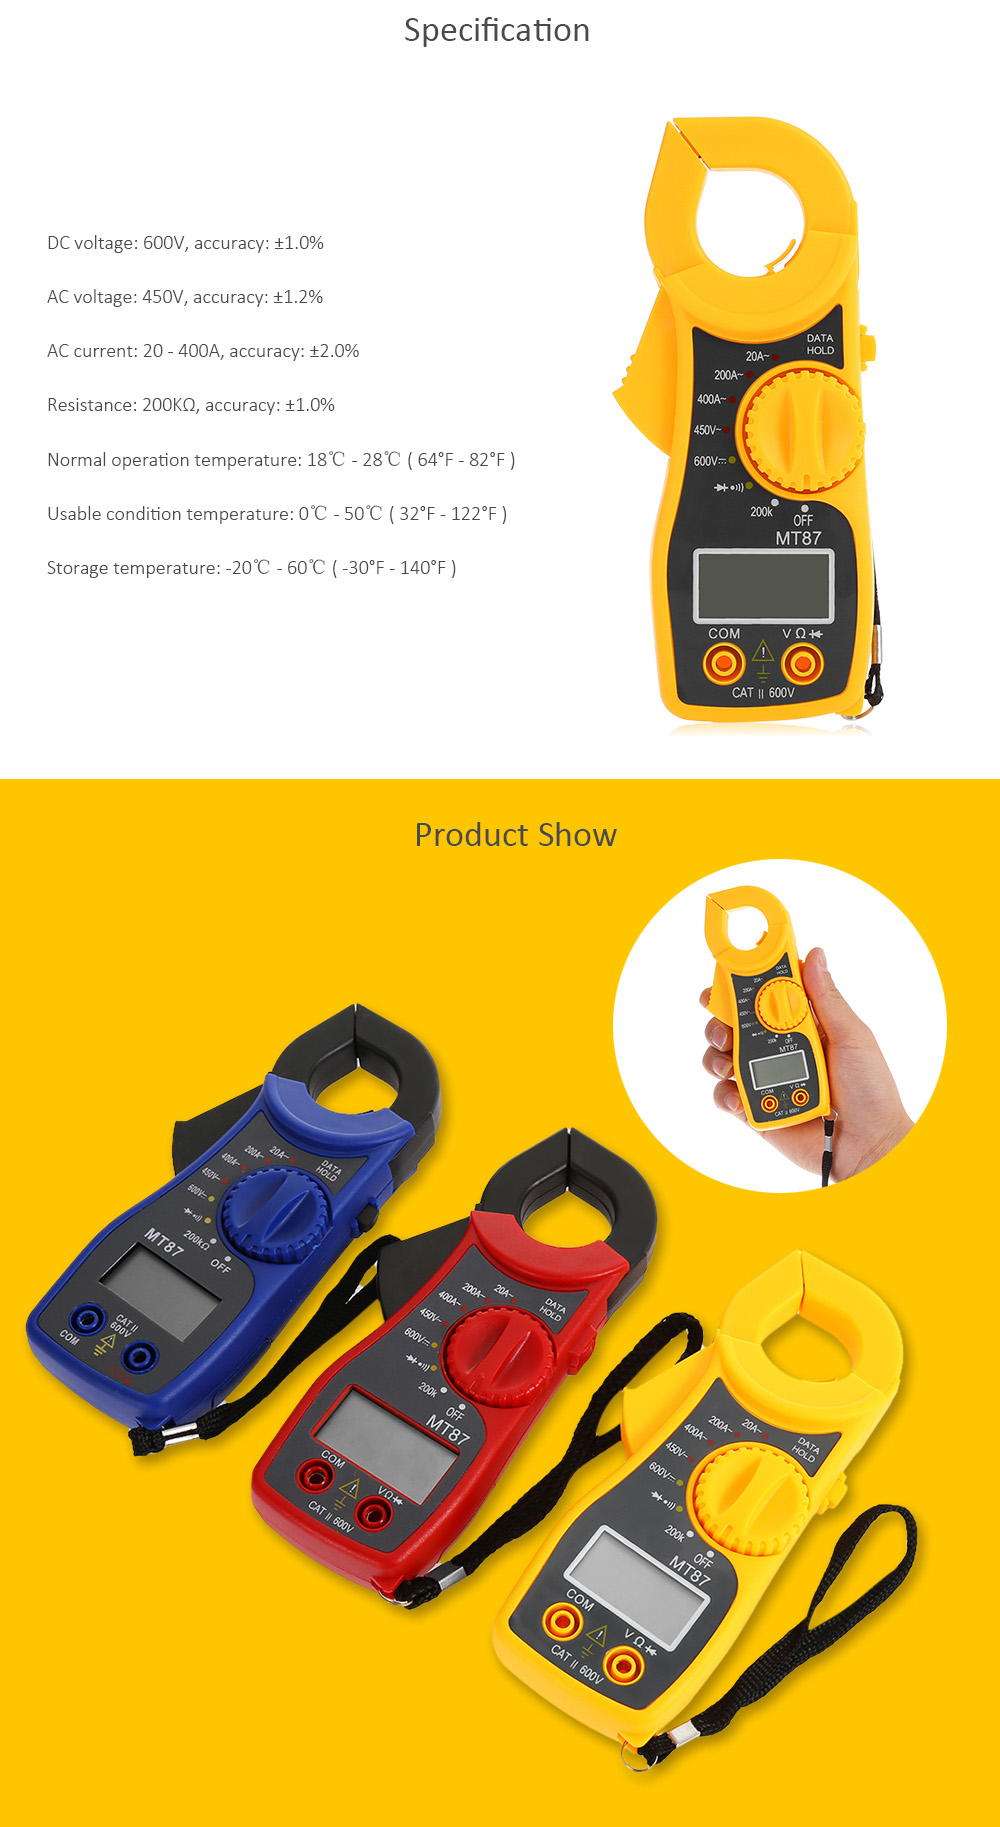 Mt87 Digital Clamp Meter 955 Free Shipping Voucher Mc Donald 200k We Do Not Accept Any Responsibility Or Liability For Misuse Of This Other Product All Our Products Are Extensively Tested To Comply With Rigorous